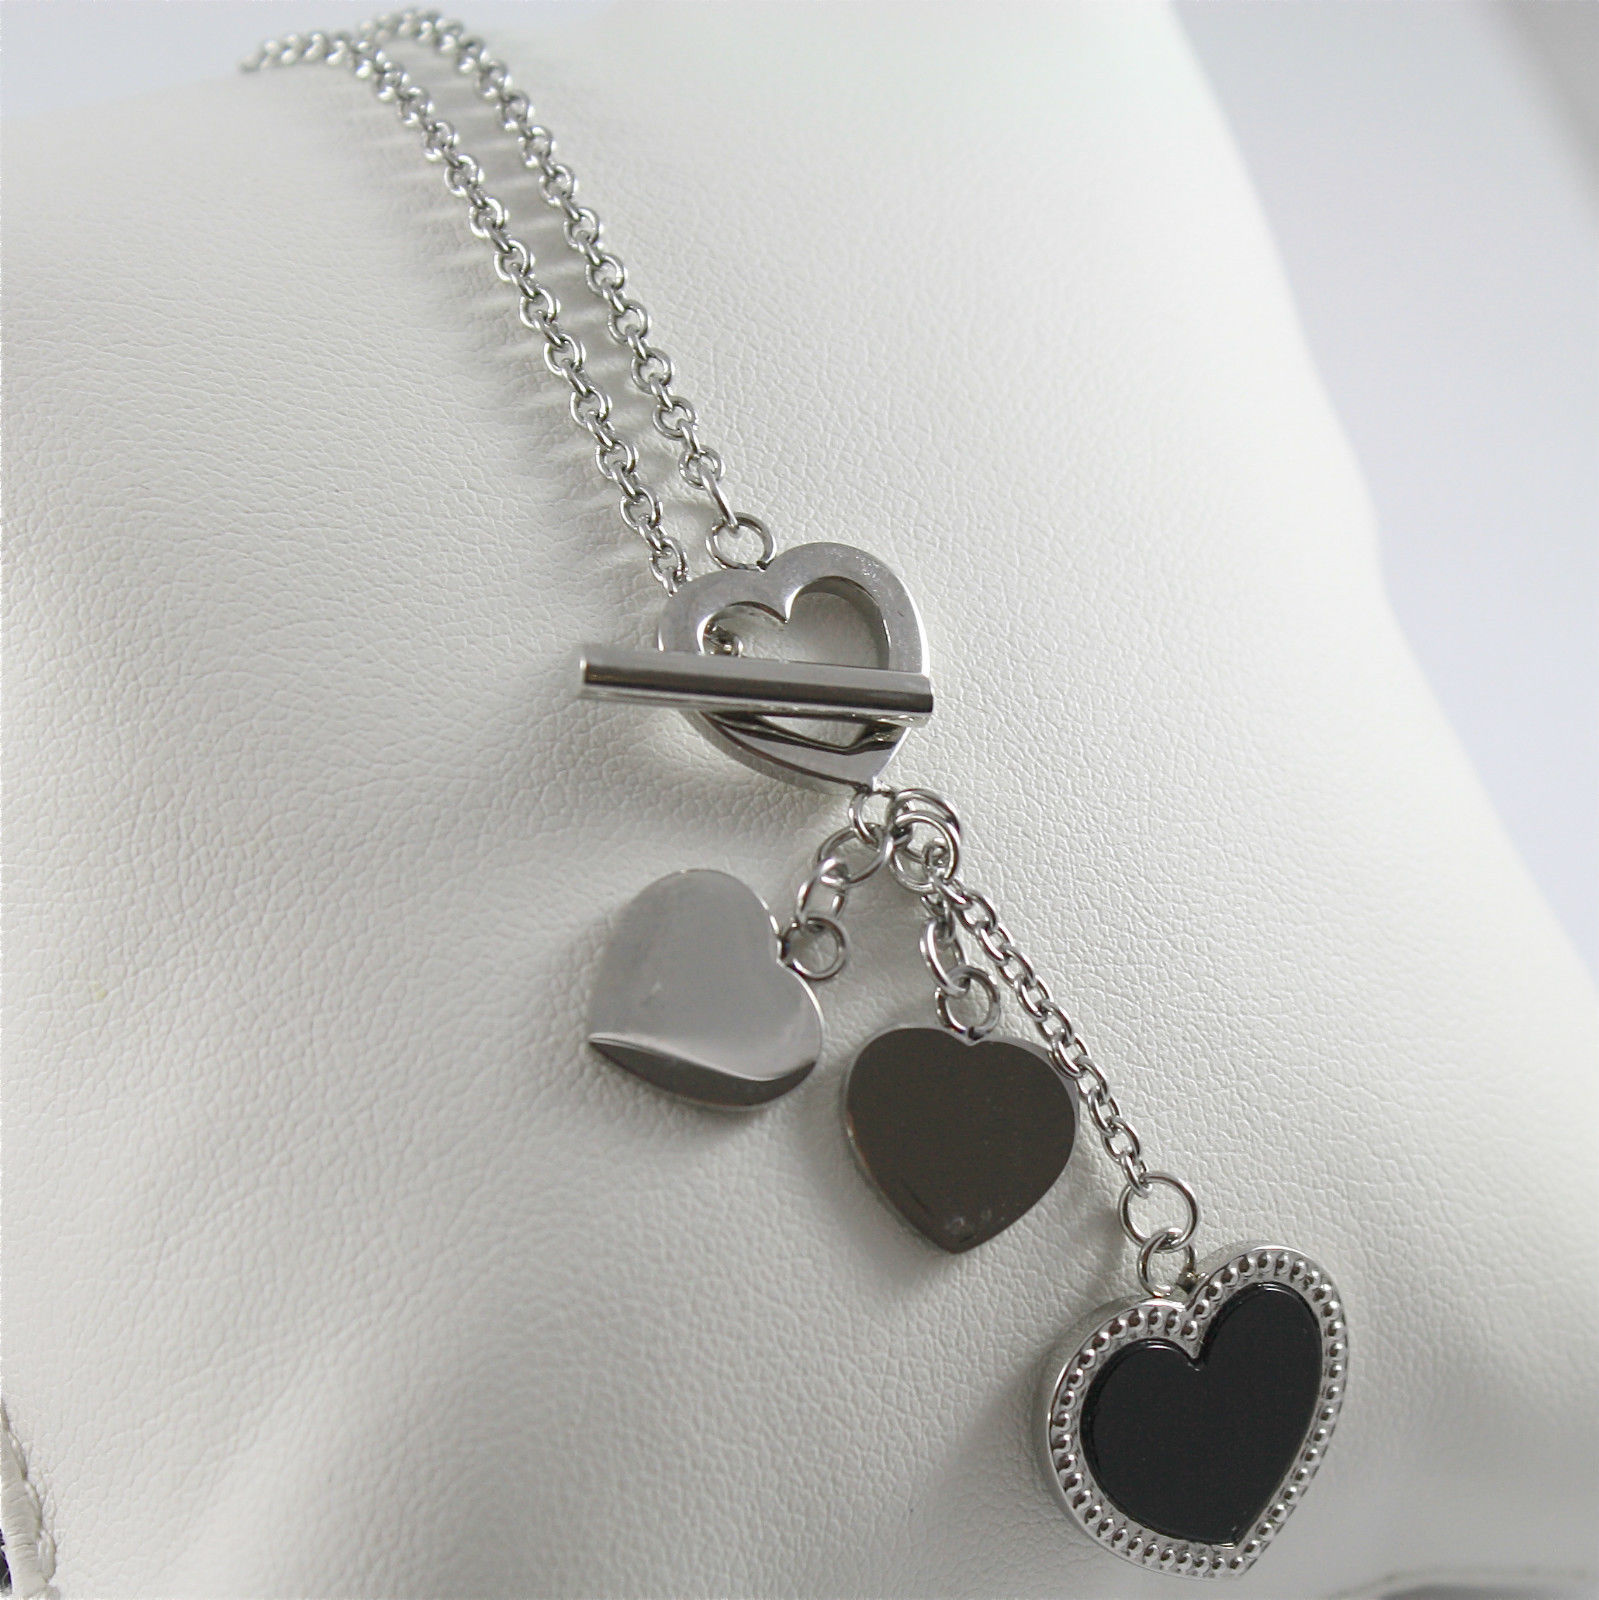 S'AGAPO' NECKLACE, 316L STEEL, BLACK GLAZED HEART, HEART CHARMS, SCARF STYLE.